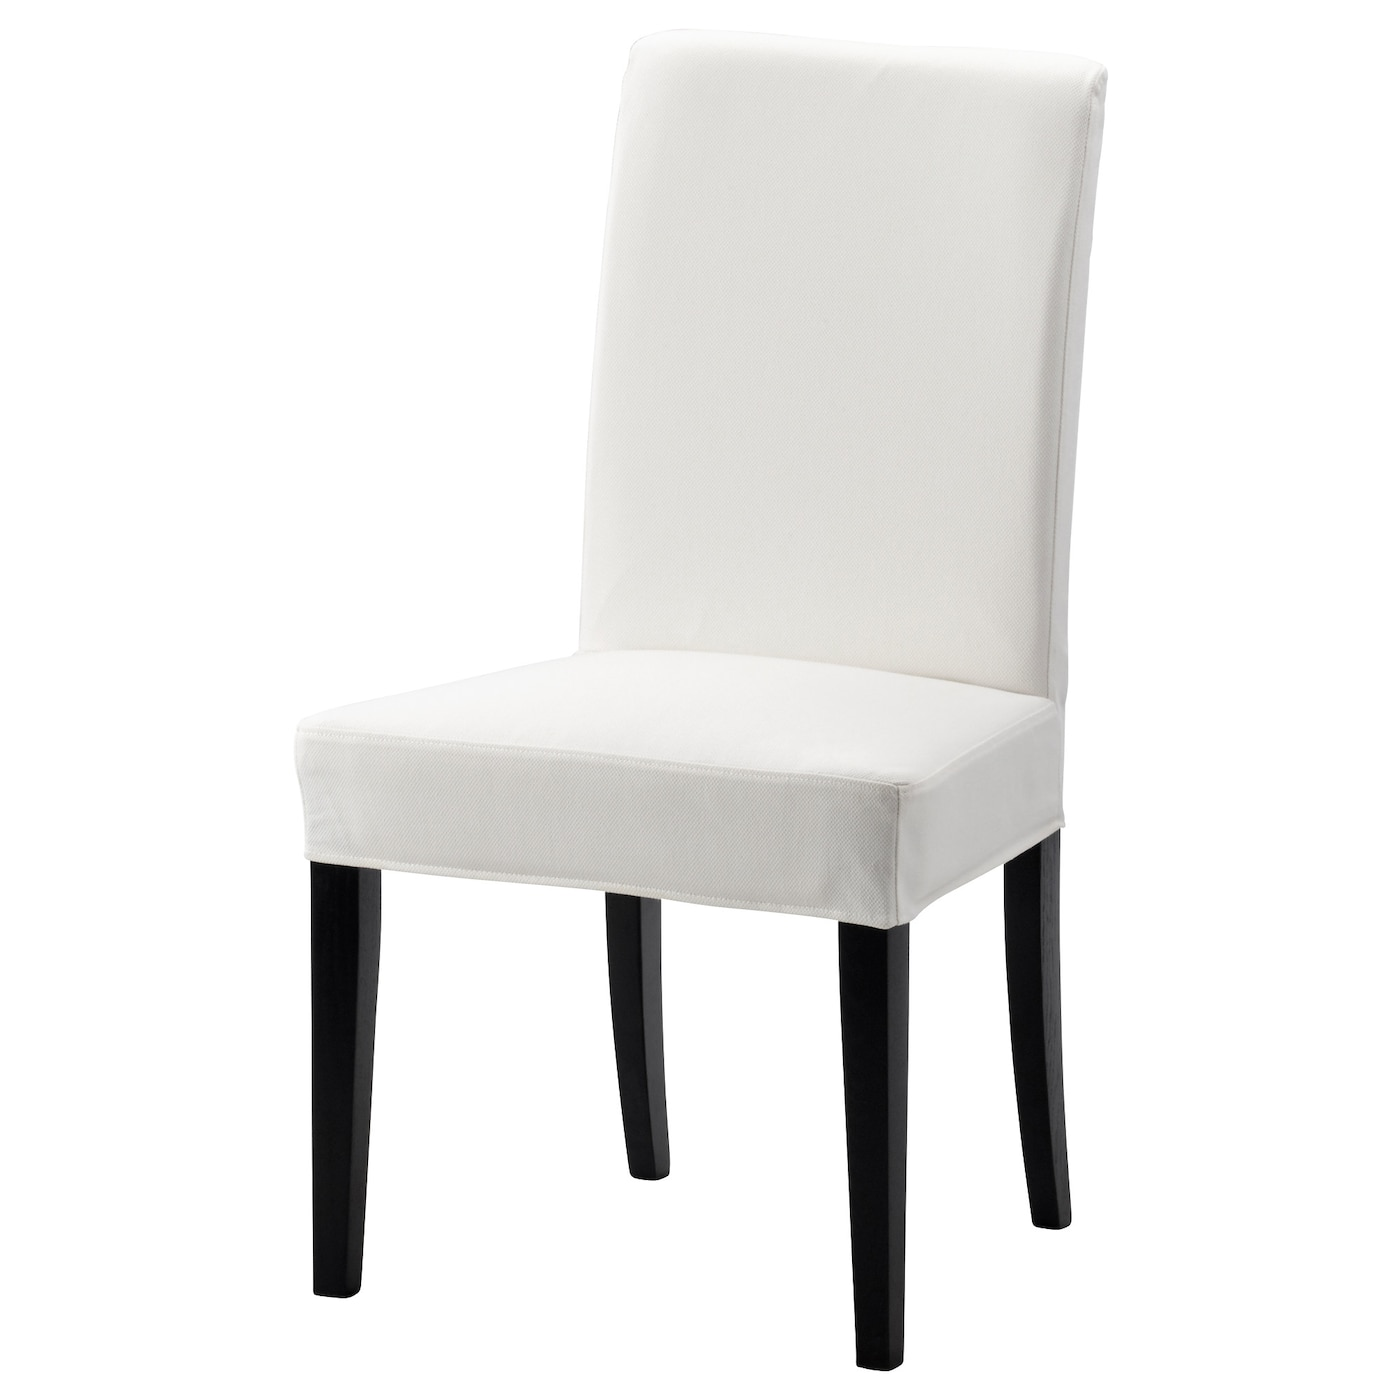 white fabric dining chairs hon office chair controls henriksdal brown black gräsbo ikea